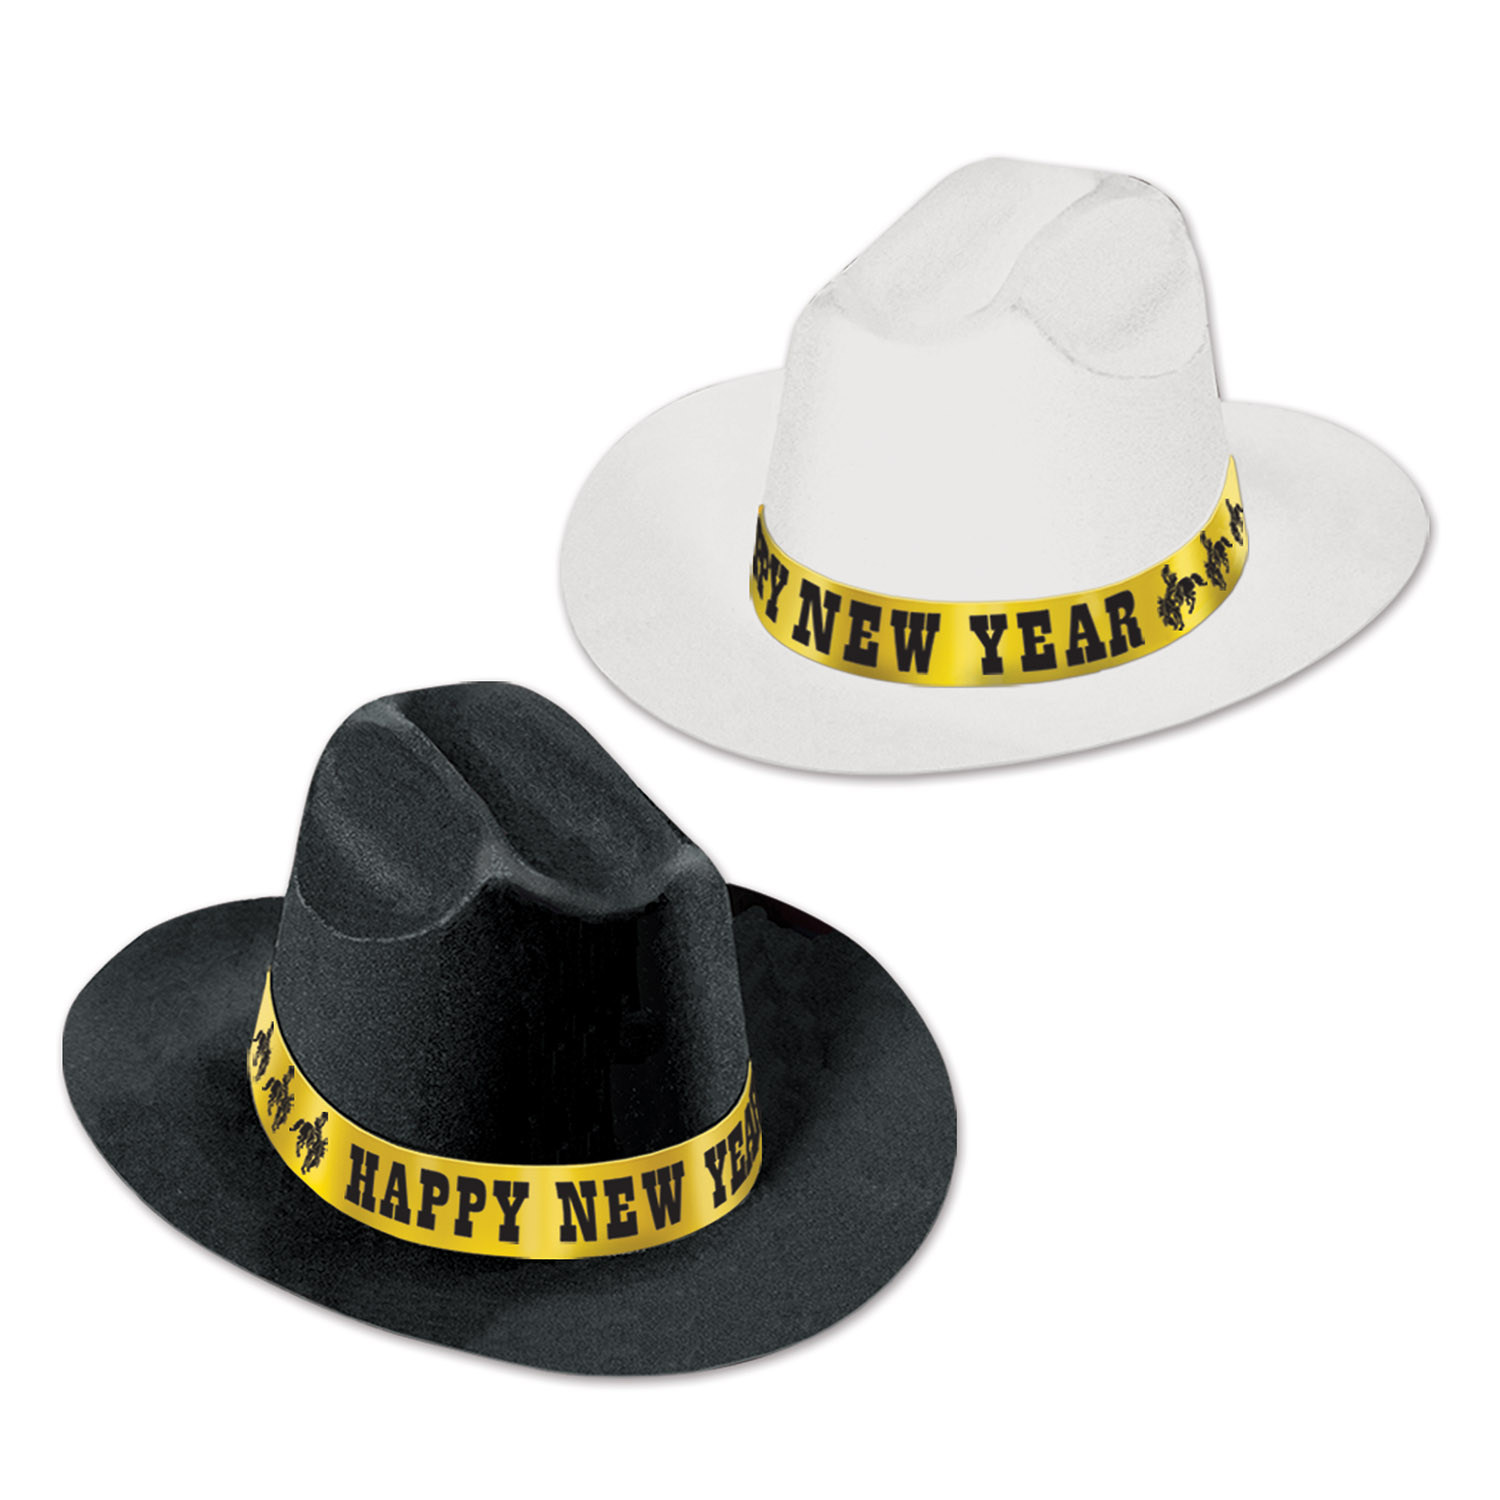 Western Nights Cowboy Hats (Pack of 25) Western Nights Cowboy Hats, Cowboy Hats, Party Hats, Hats, New Year's Hats, New Year's Party Hats, New Year's Eve Hats, New Year's Eve Party Hats